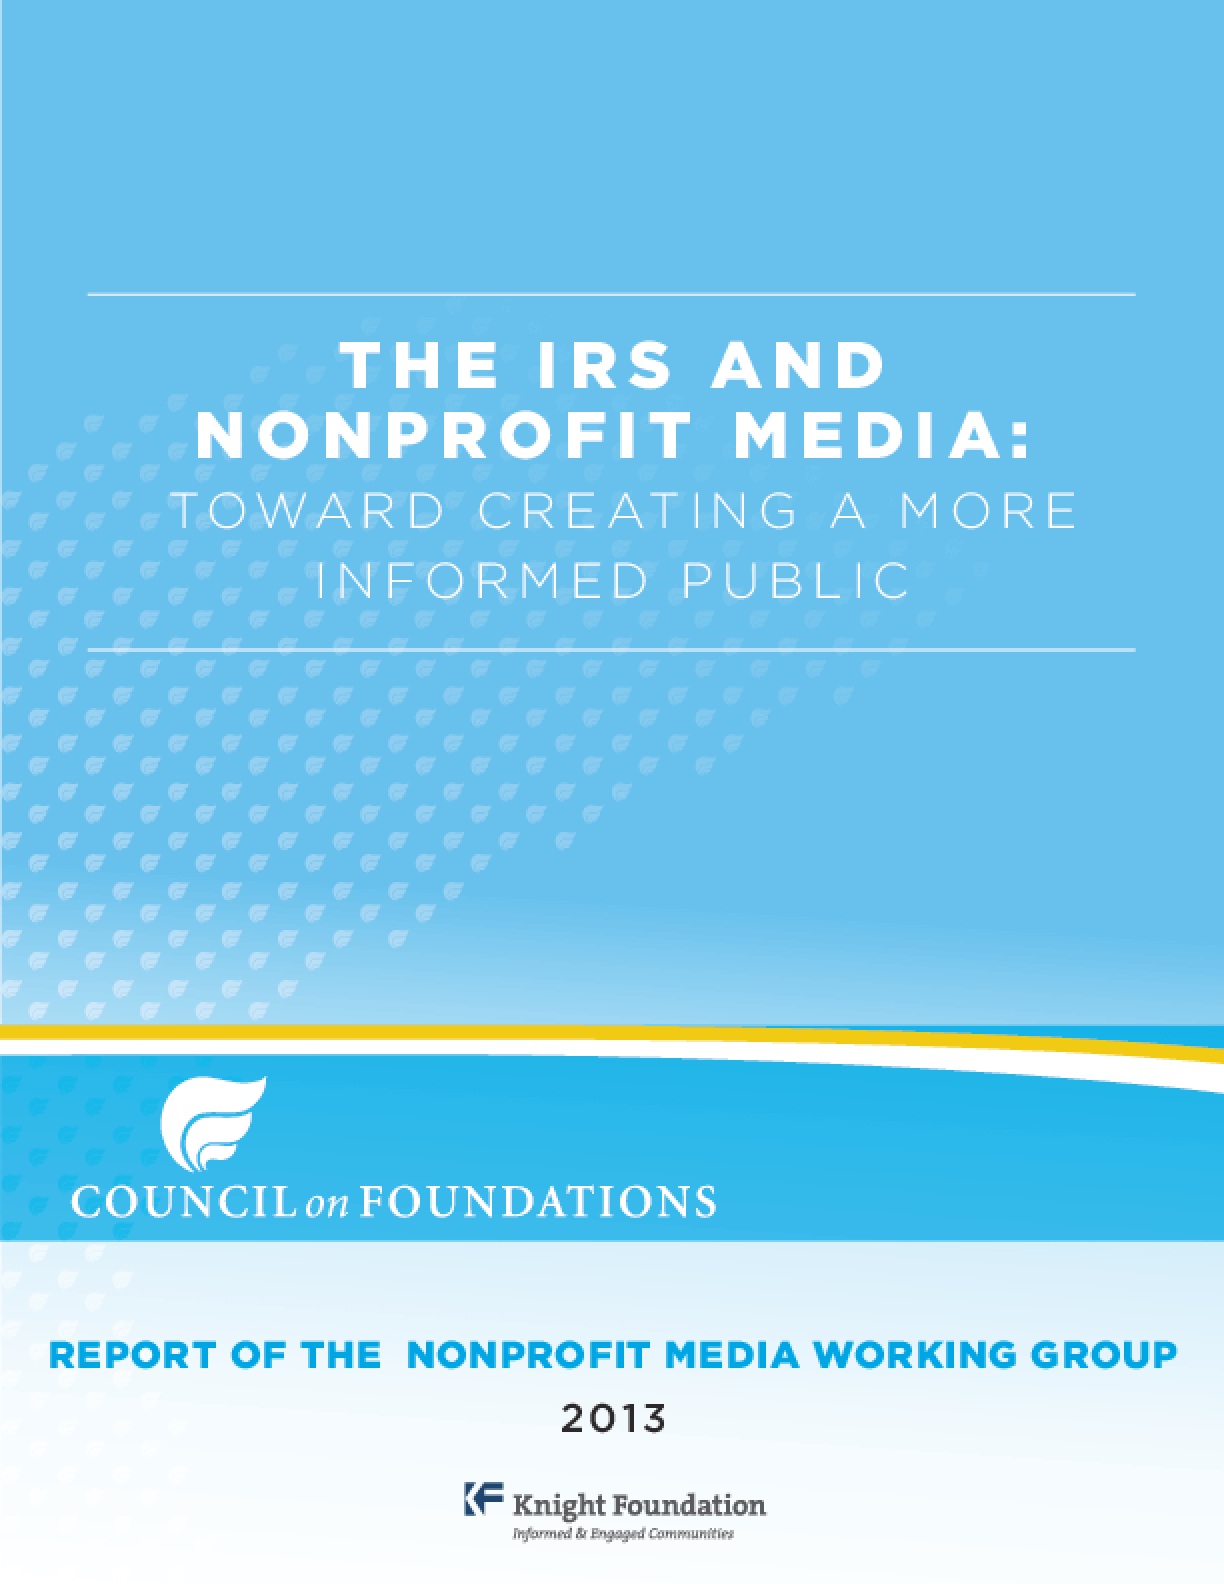 The IRS and Nonprofit Media: Toward Creating a More Informed Public